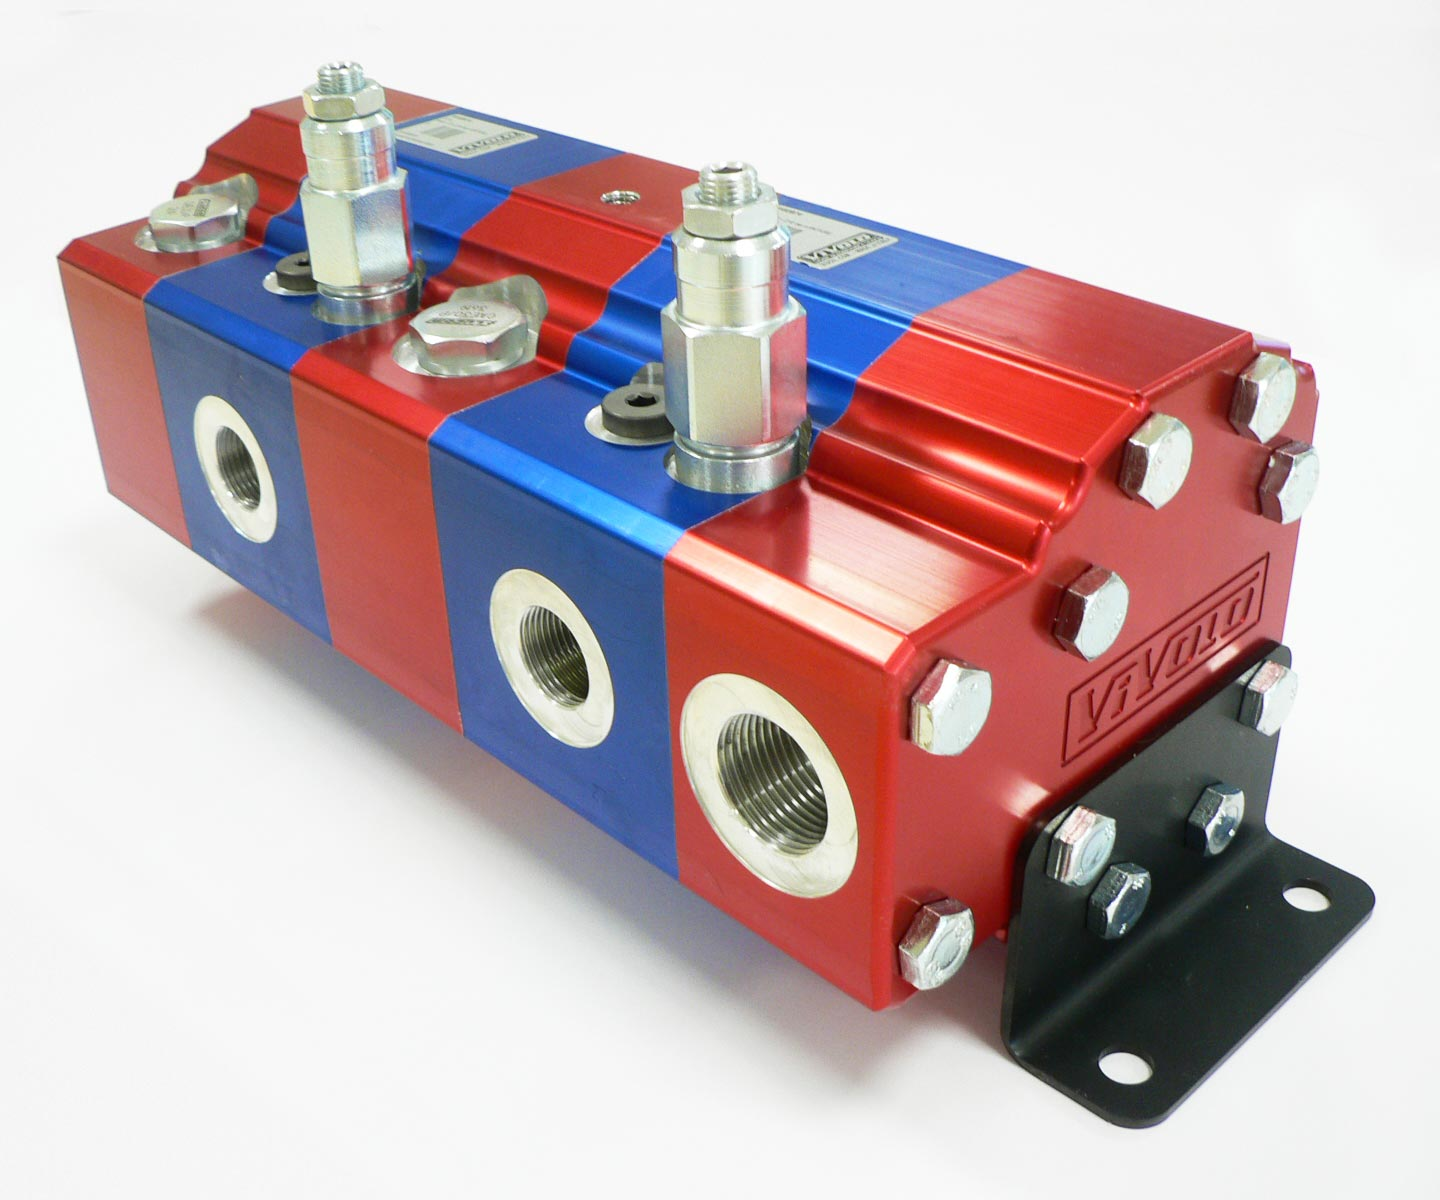 New product: Group 3 Flow Divider with Valves